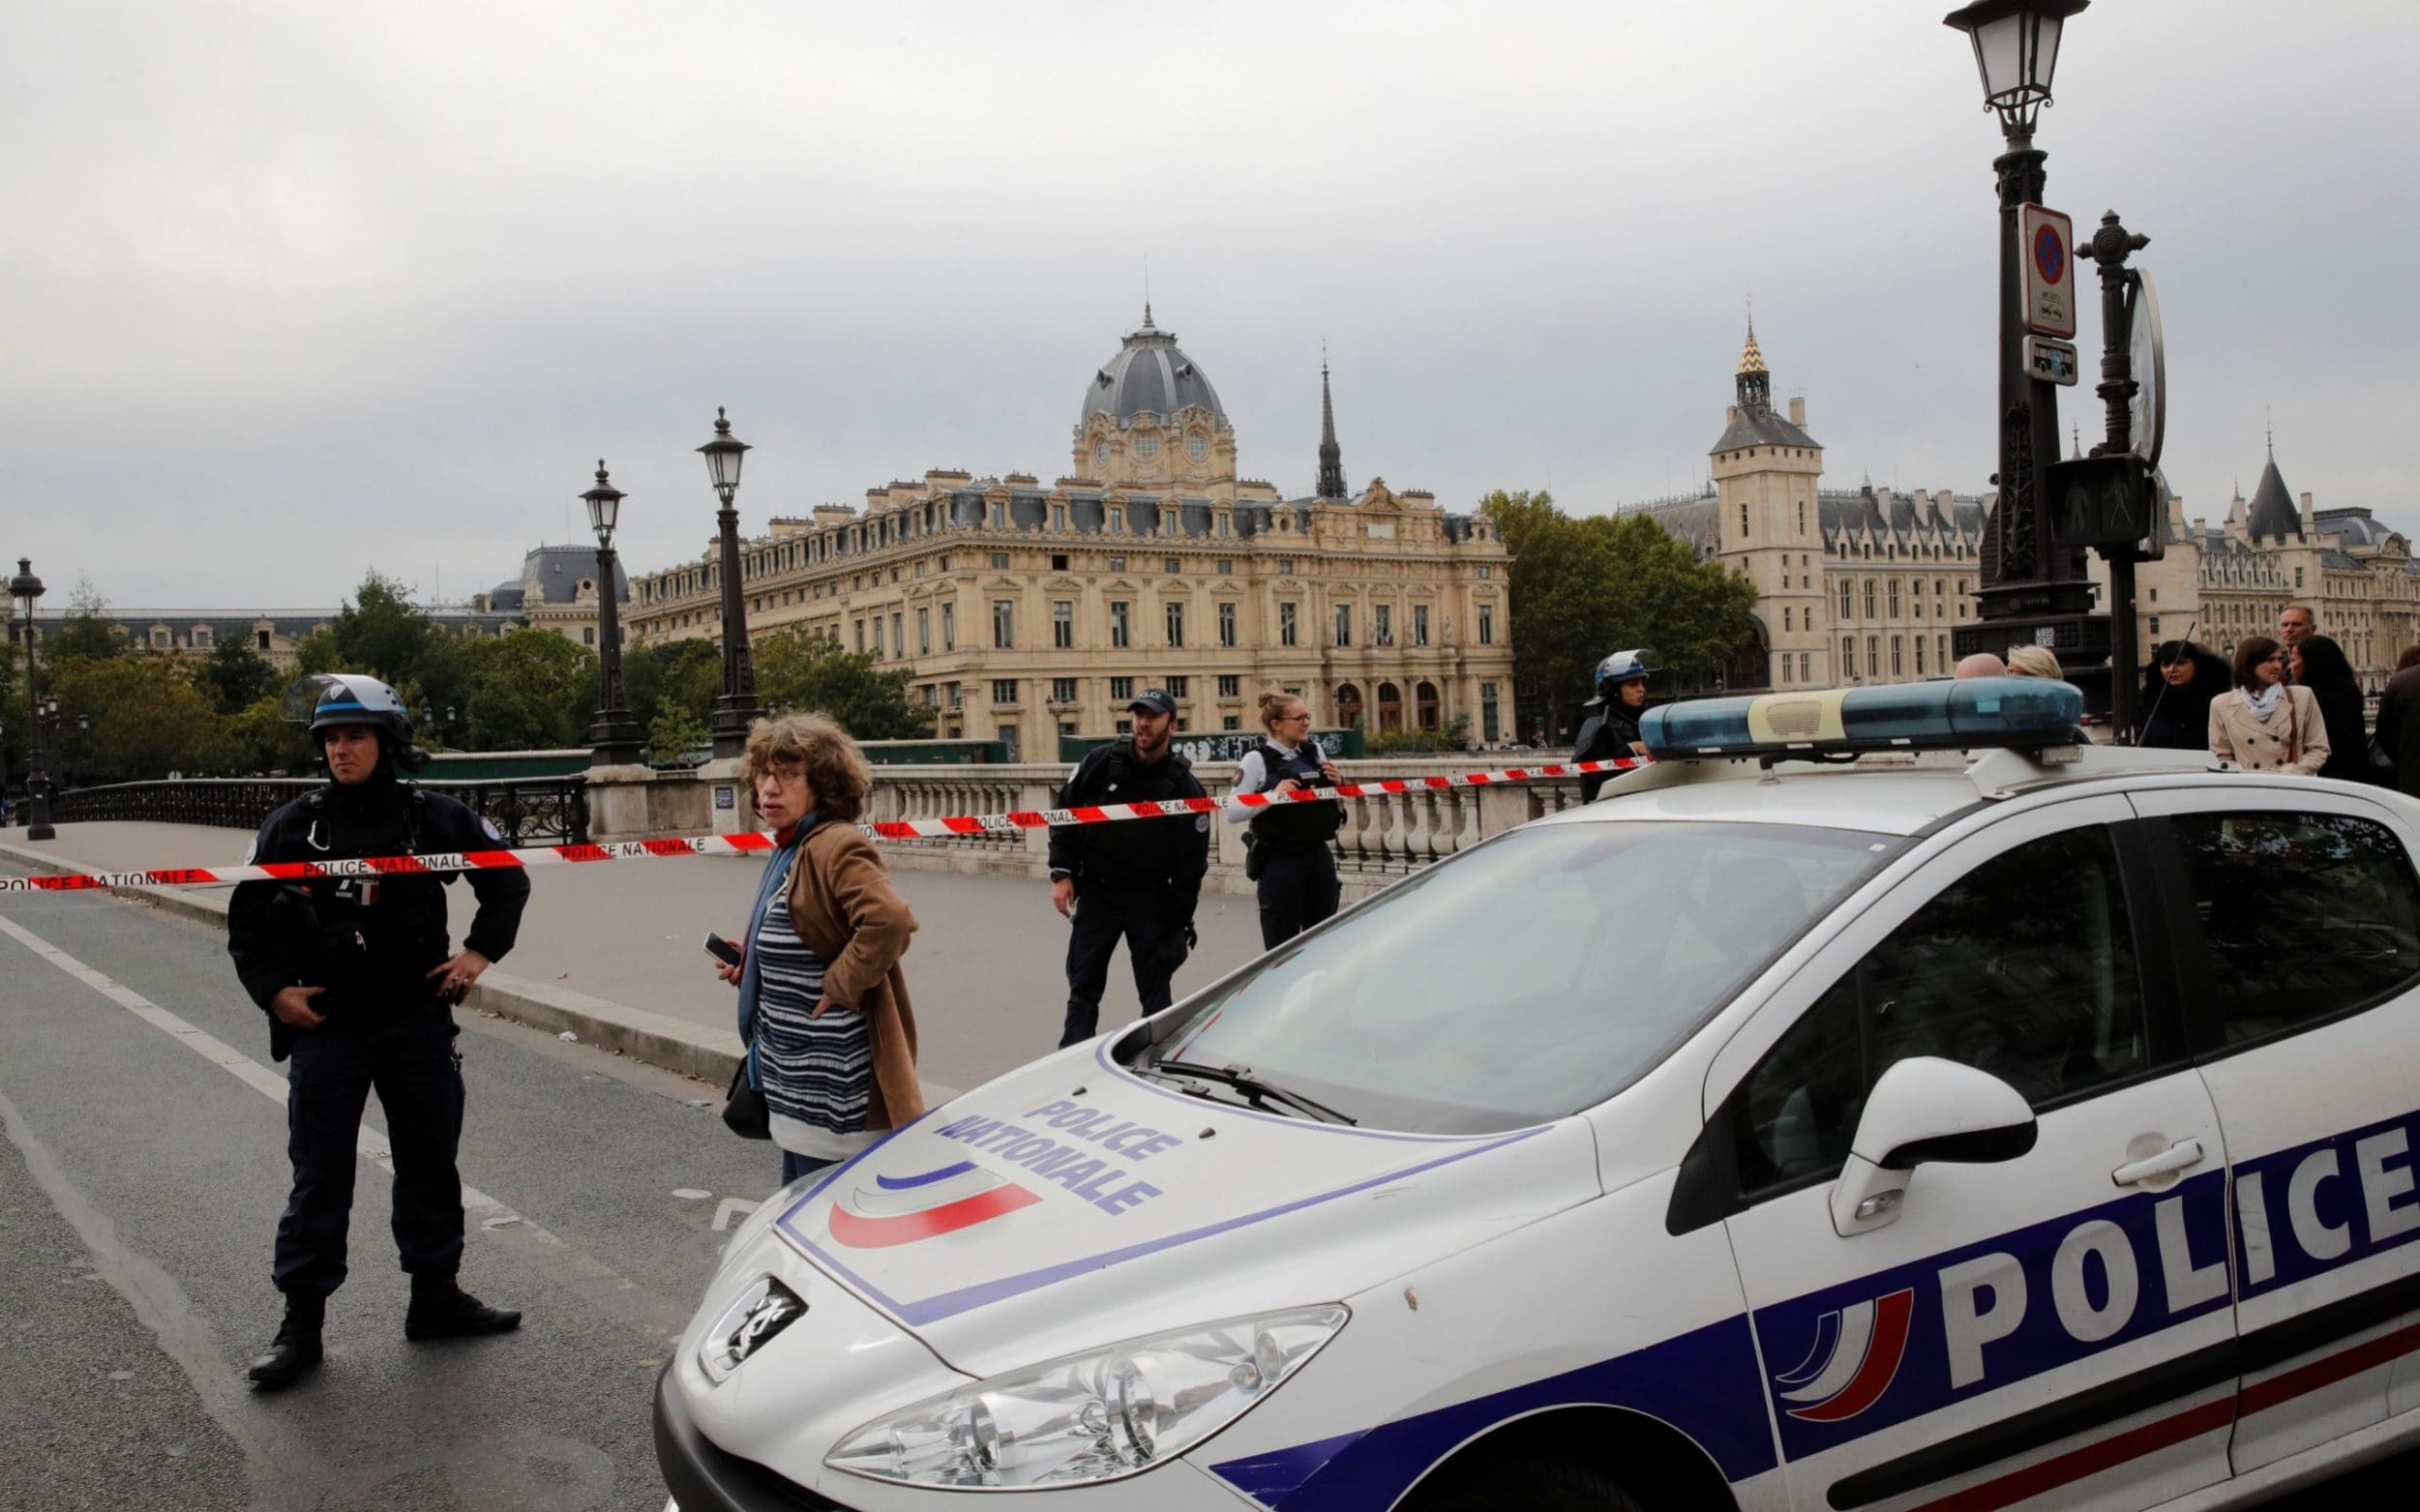 At least two injured police officers, one of them seriously, in a knife attack in Paris